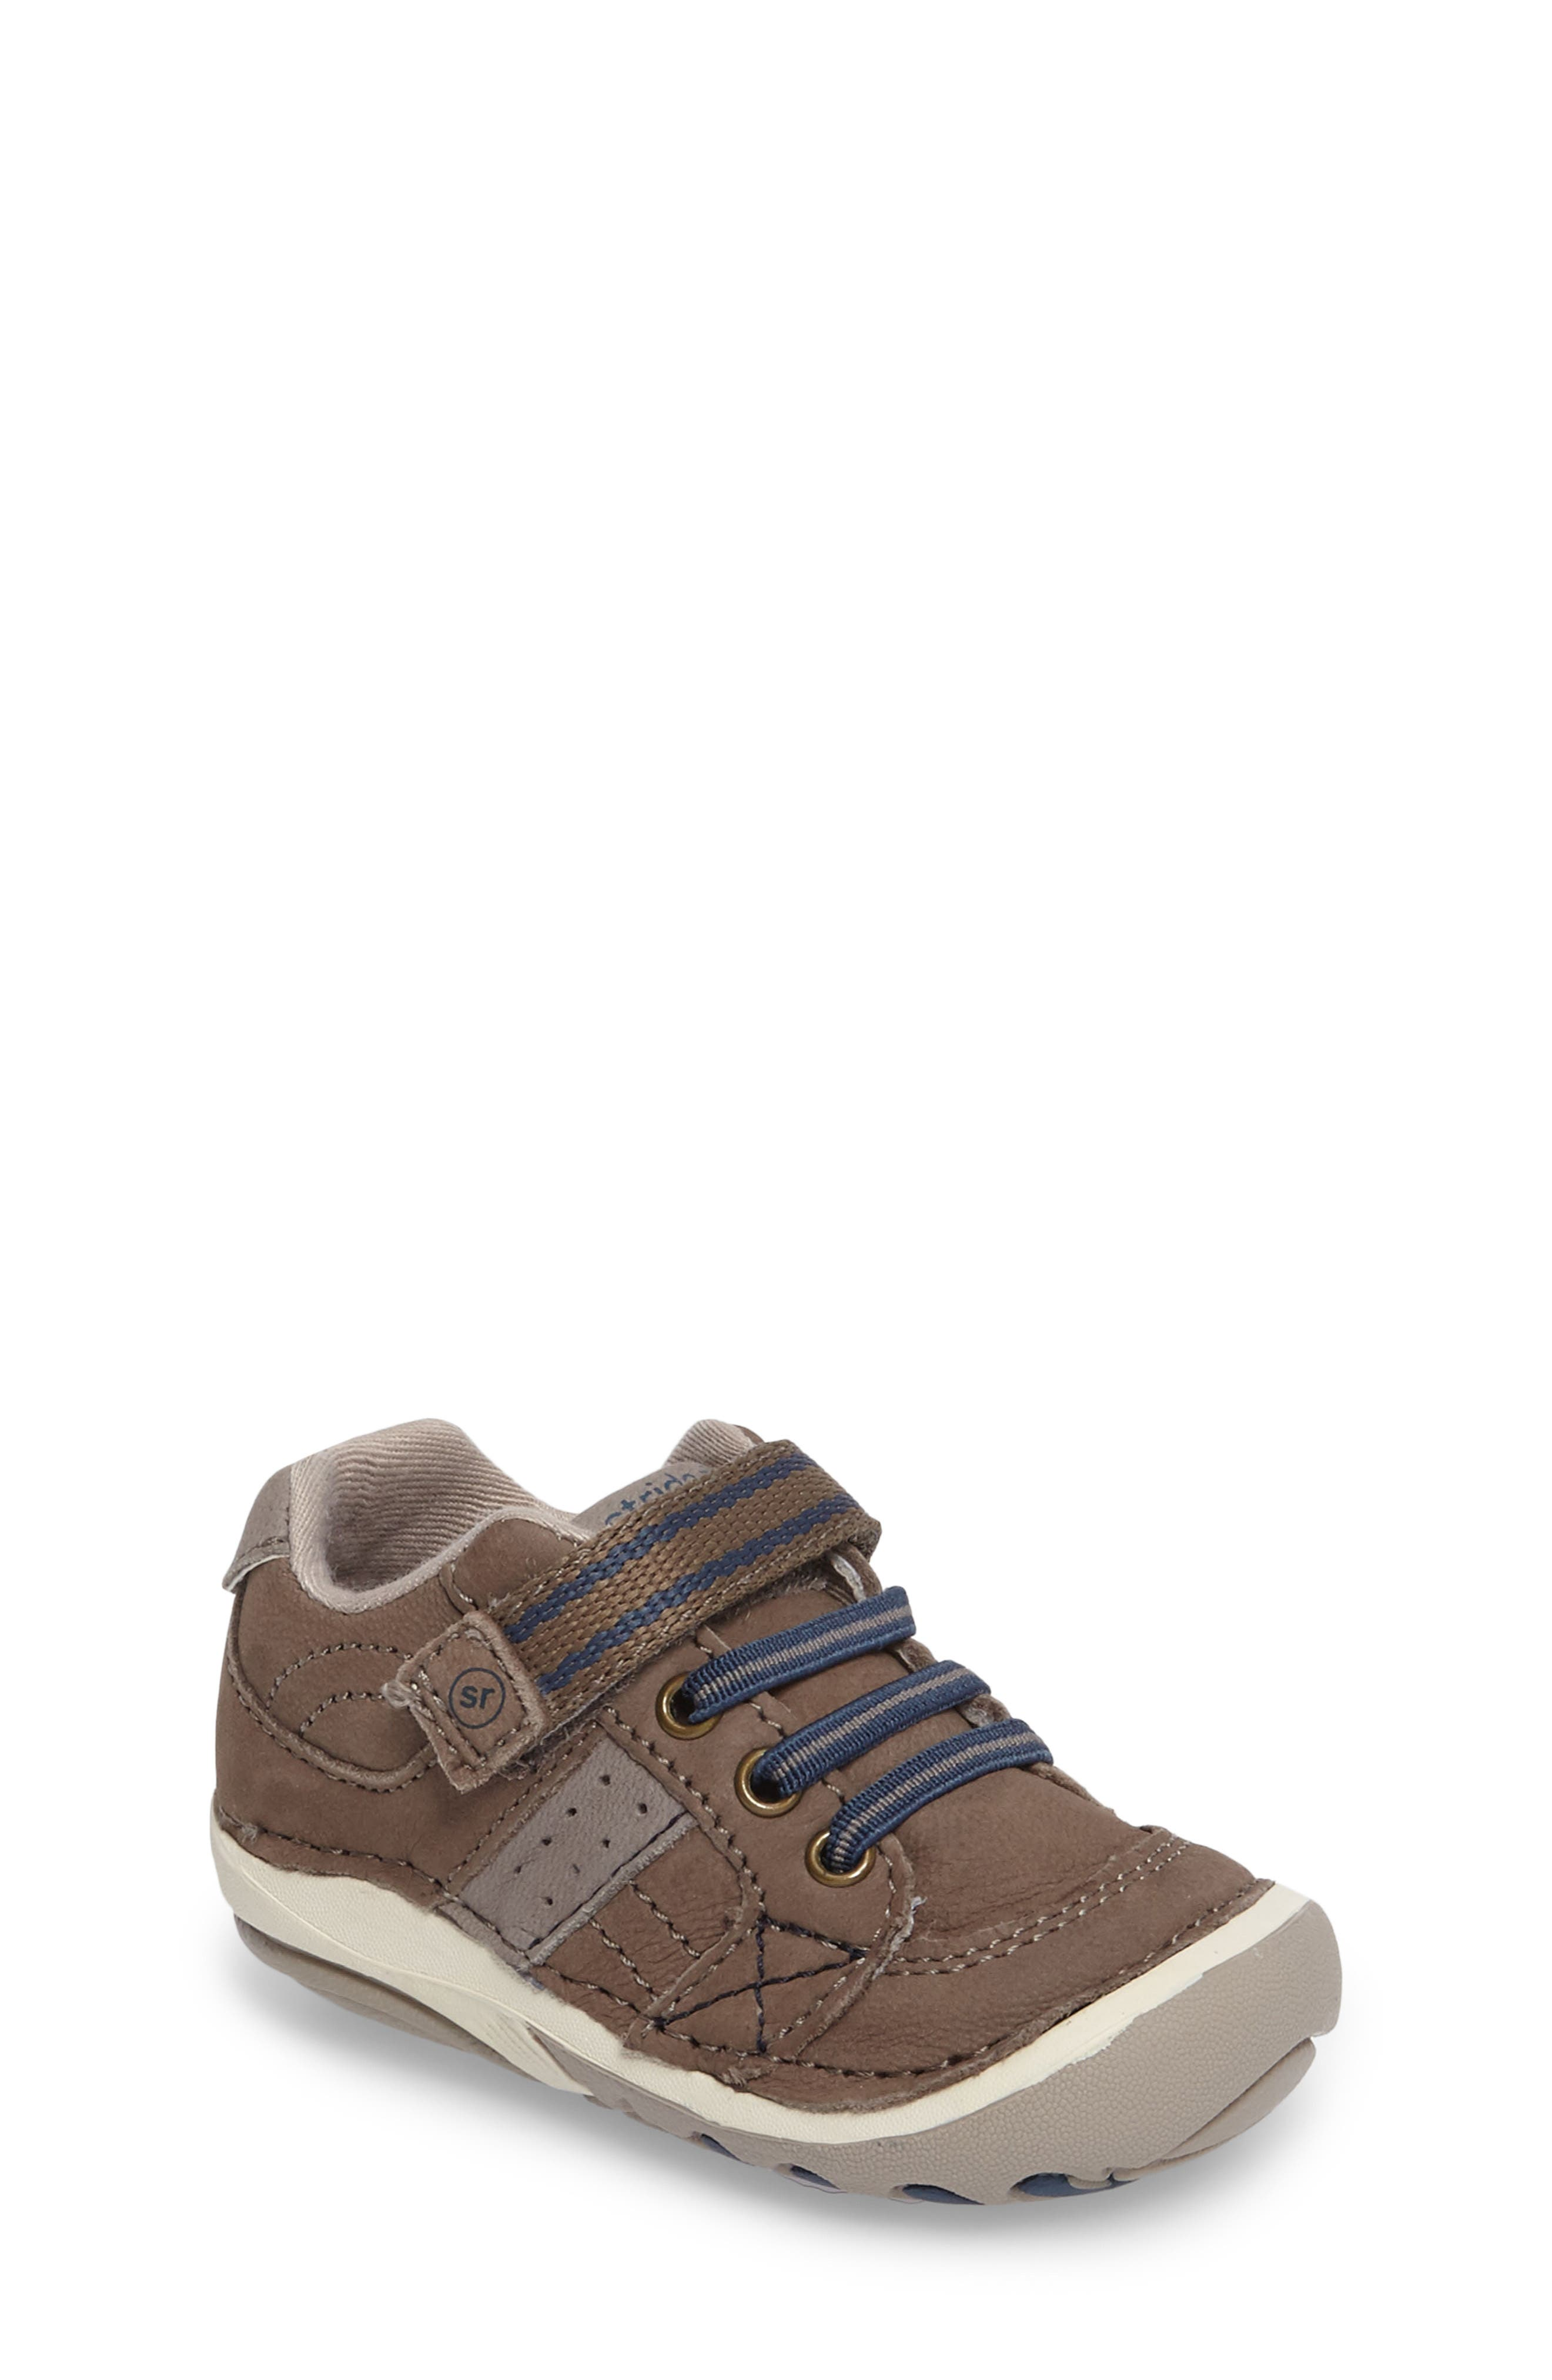 Baby's Shoes: First Walkers   Nordstrom